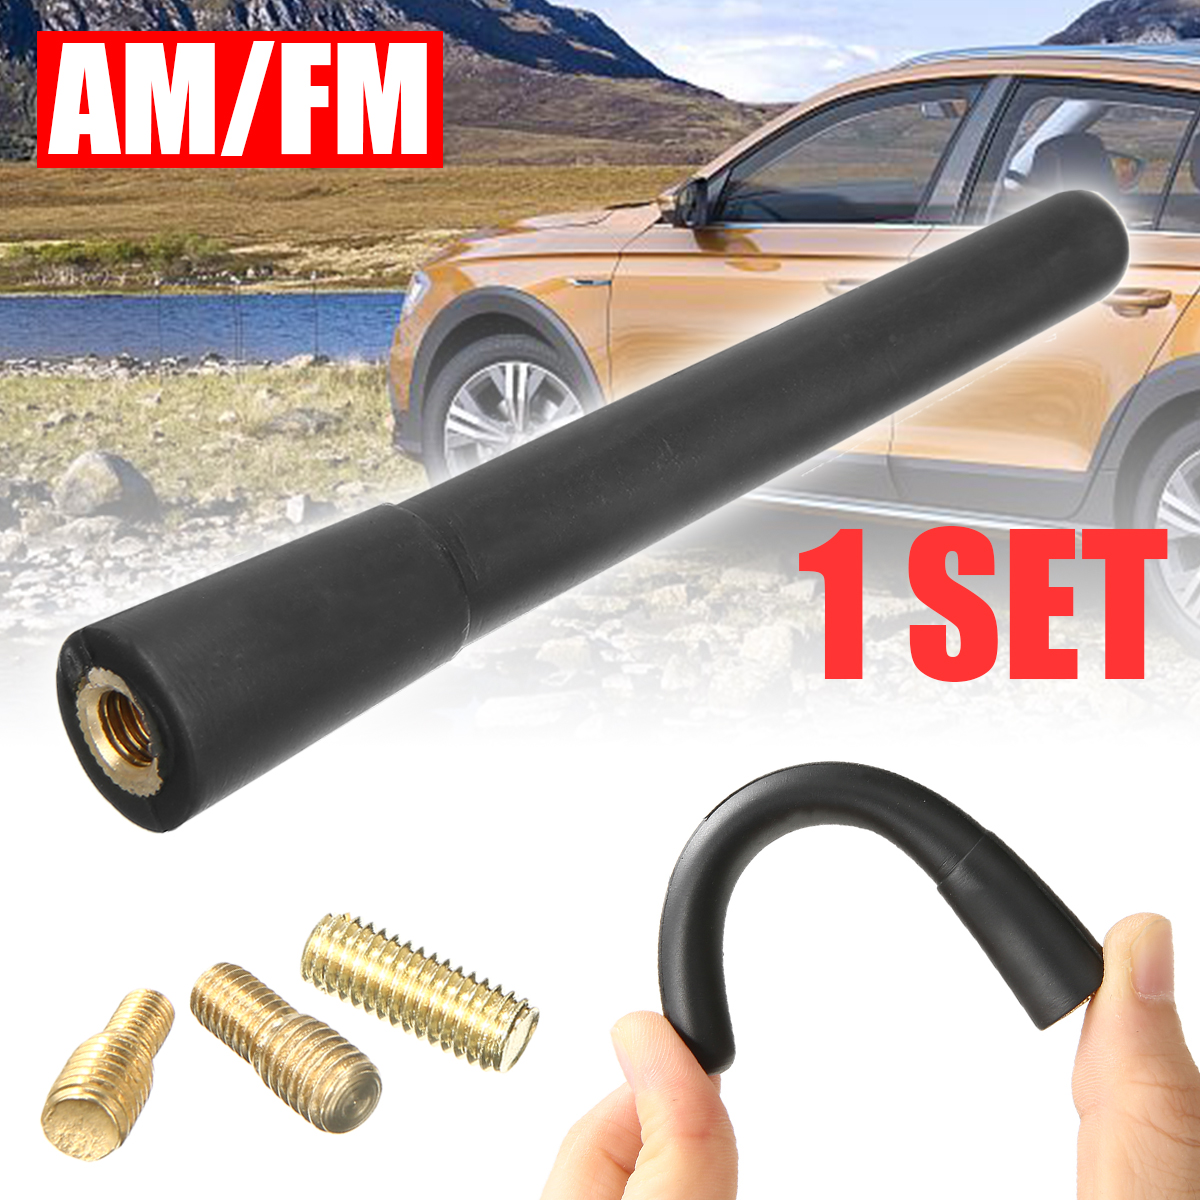 Universal Car Short Stubby Mast Antenna SCREW-IN Type AM/FM Radio Aerials For Car Exterior Styling